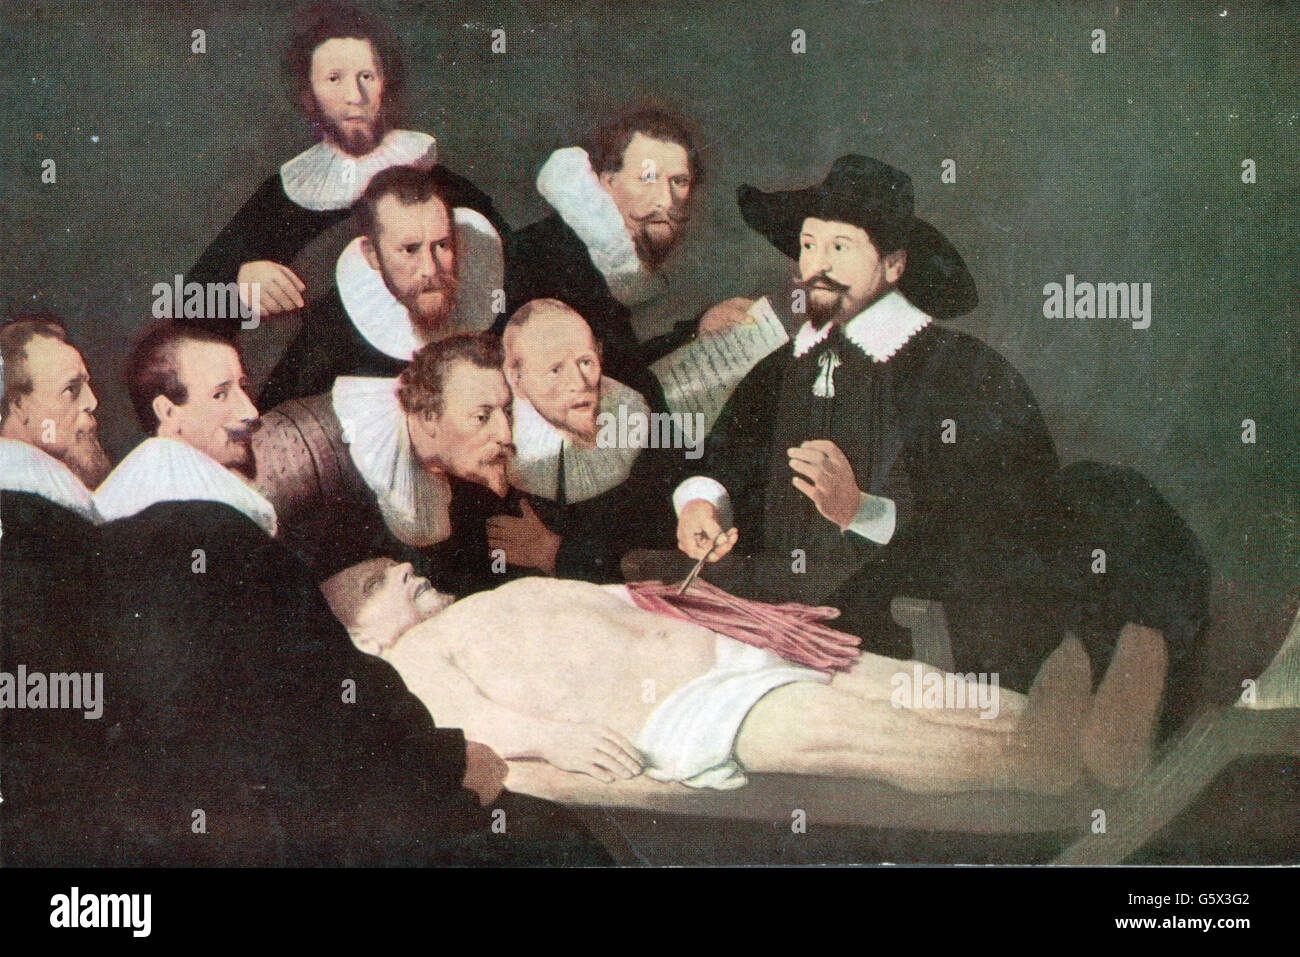 The Anatomy Lesson Of Dr Nicolaes Tulp By Rembrandt Van Rijn 1632